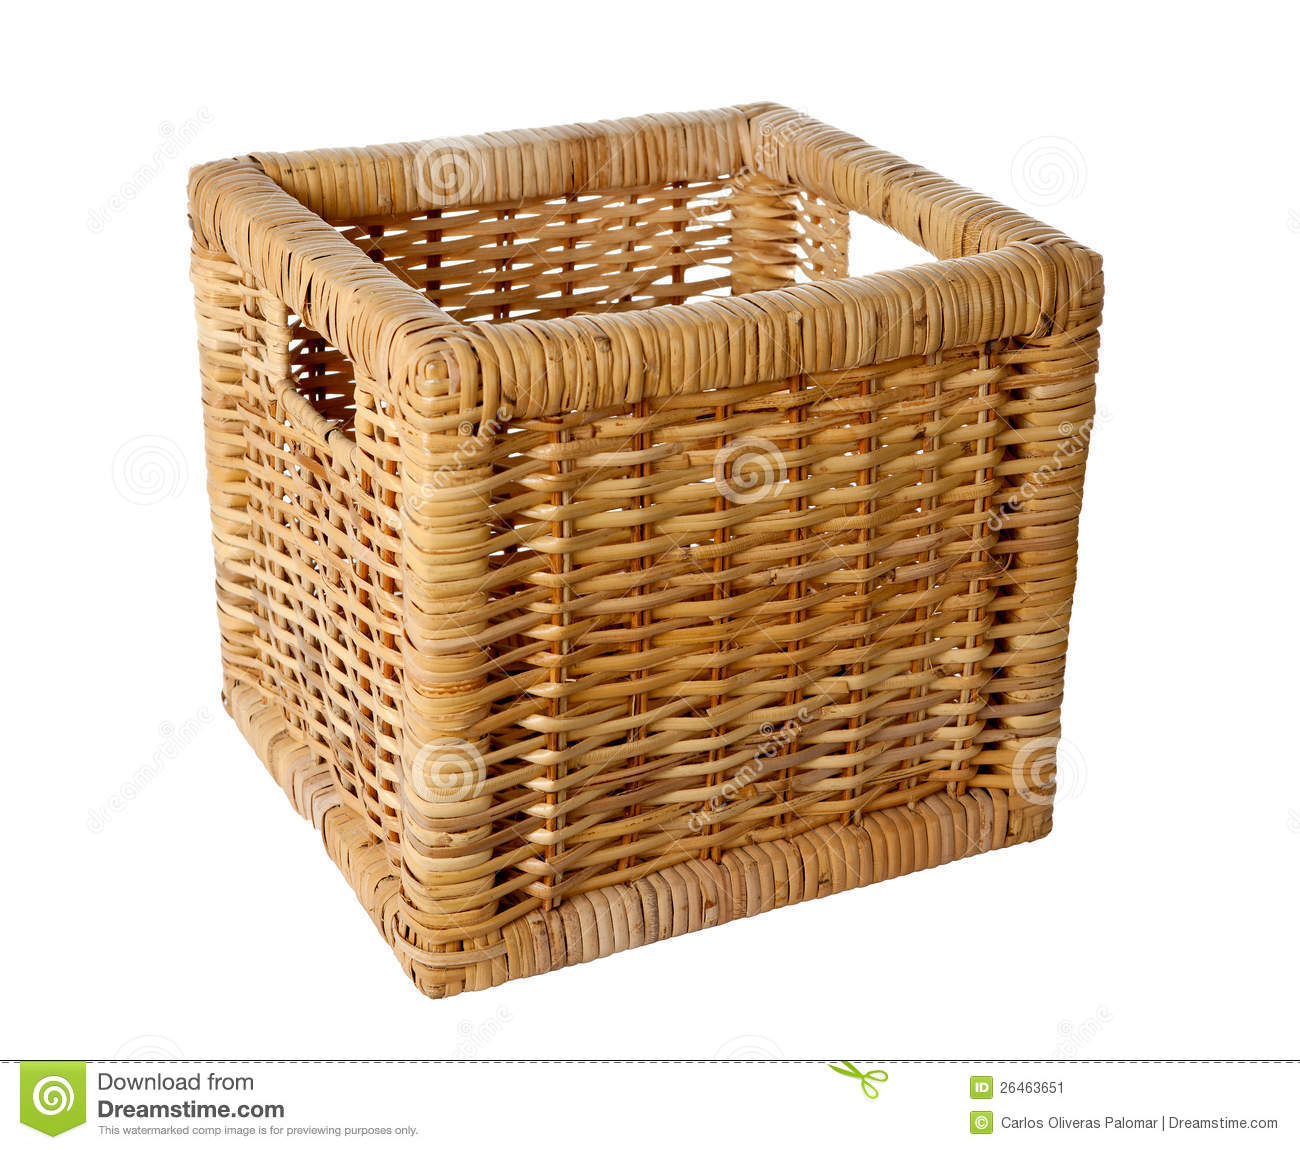 Panier En Osier Wicker : Square wicker basket stock image